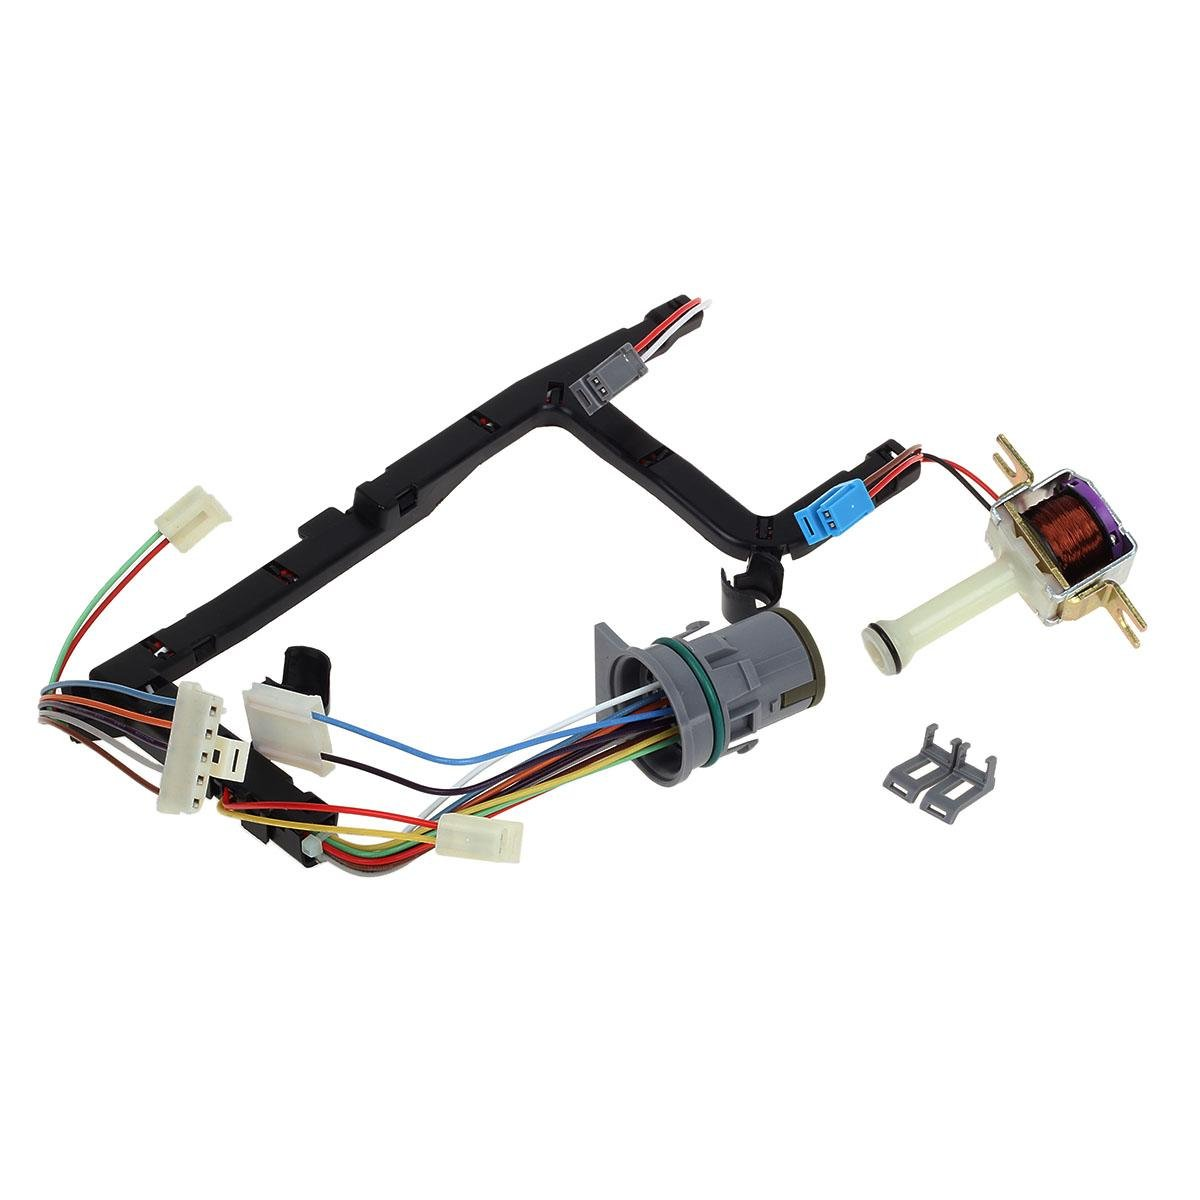 2000 Ford F150 Tcc Solenoid And Wiring Harness 46 Diagram 2002 F 150 Amazon Com Torque Converter Lock Up Solenoids Transmissions 6118mgspbll Sl1200 At